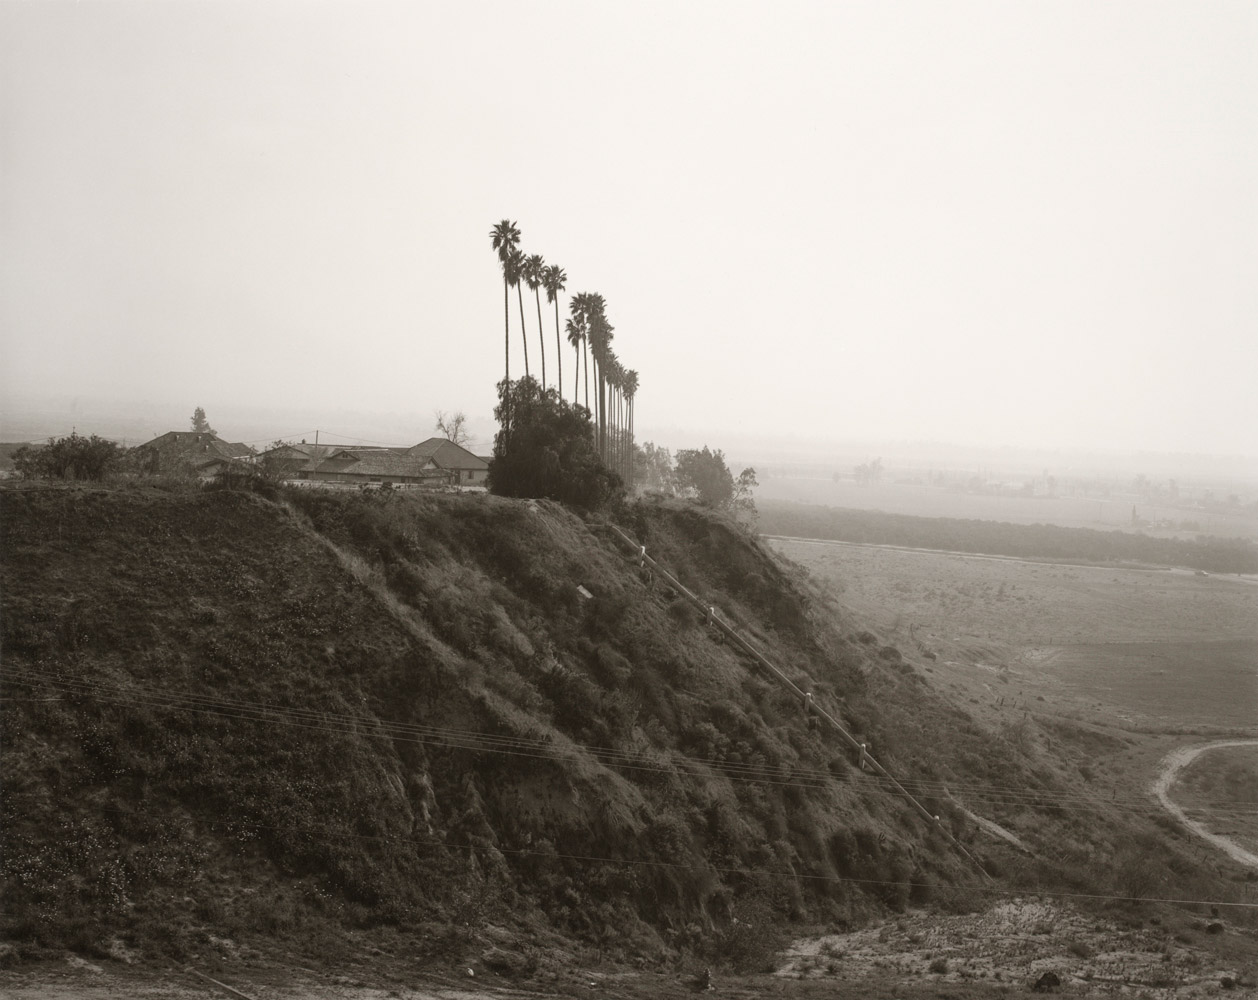 New Development on a former citrus-growing estate, Highland, California, 1983 printed 1998